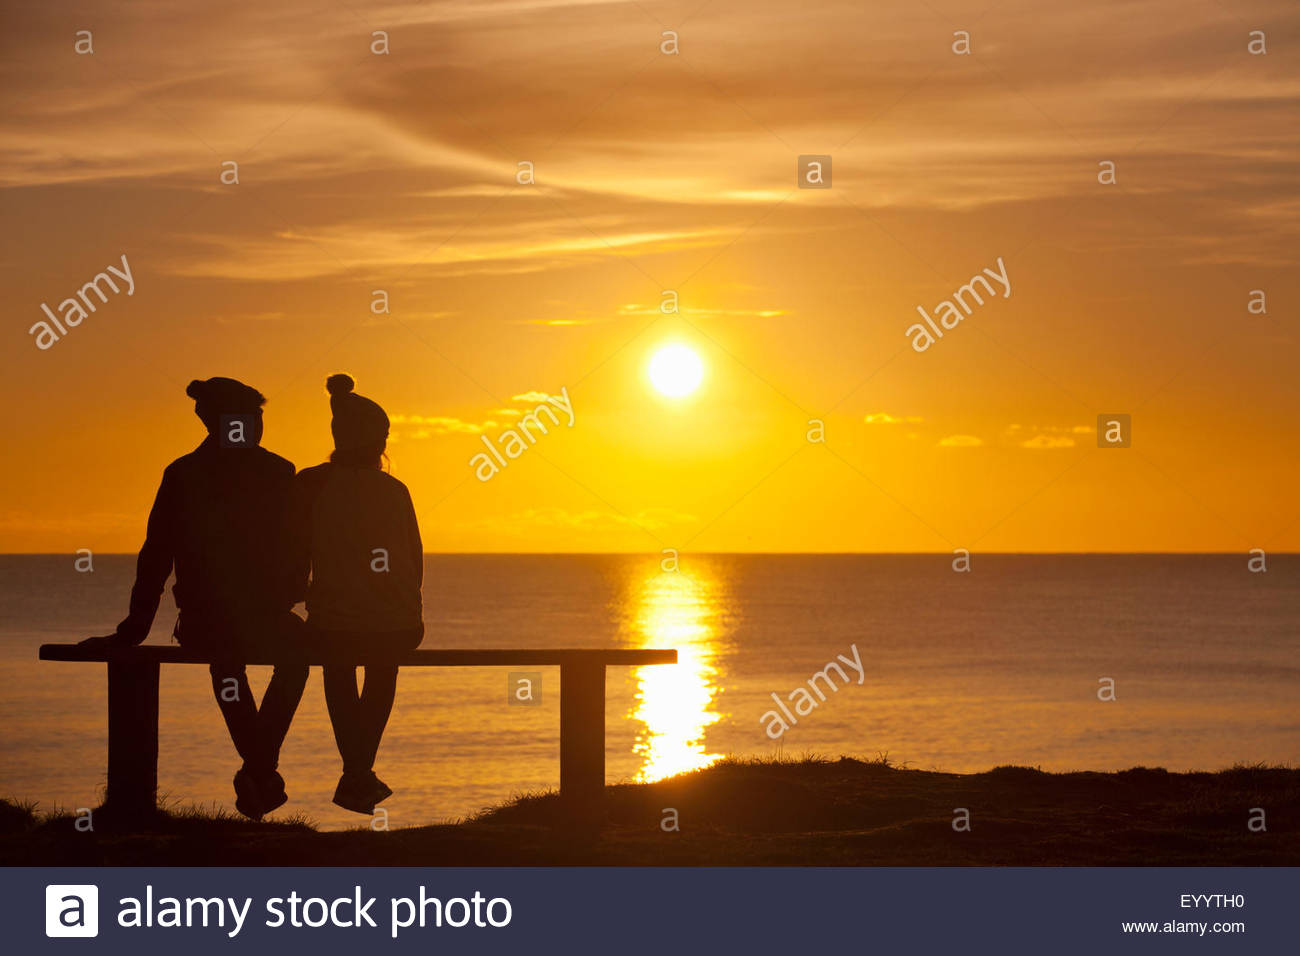 Silhouette of couple, sitting on bench, against sunset over the ocean - Stock Image